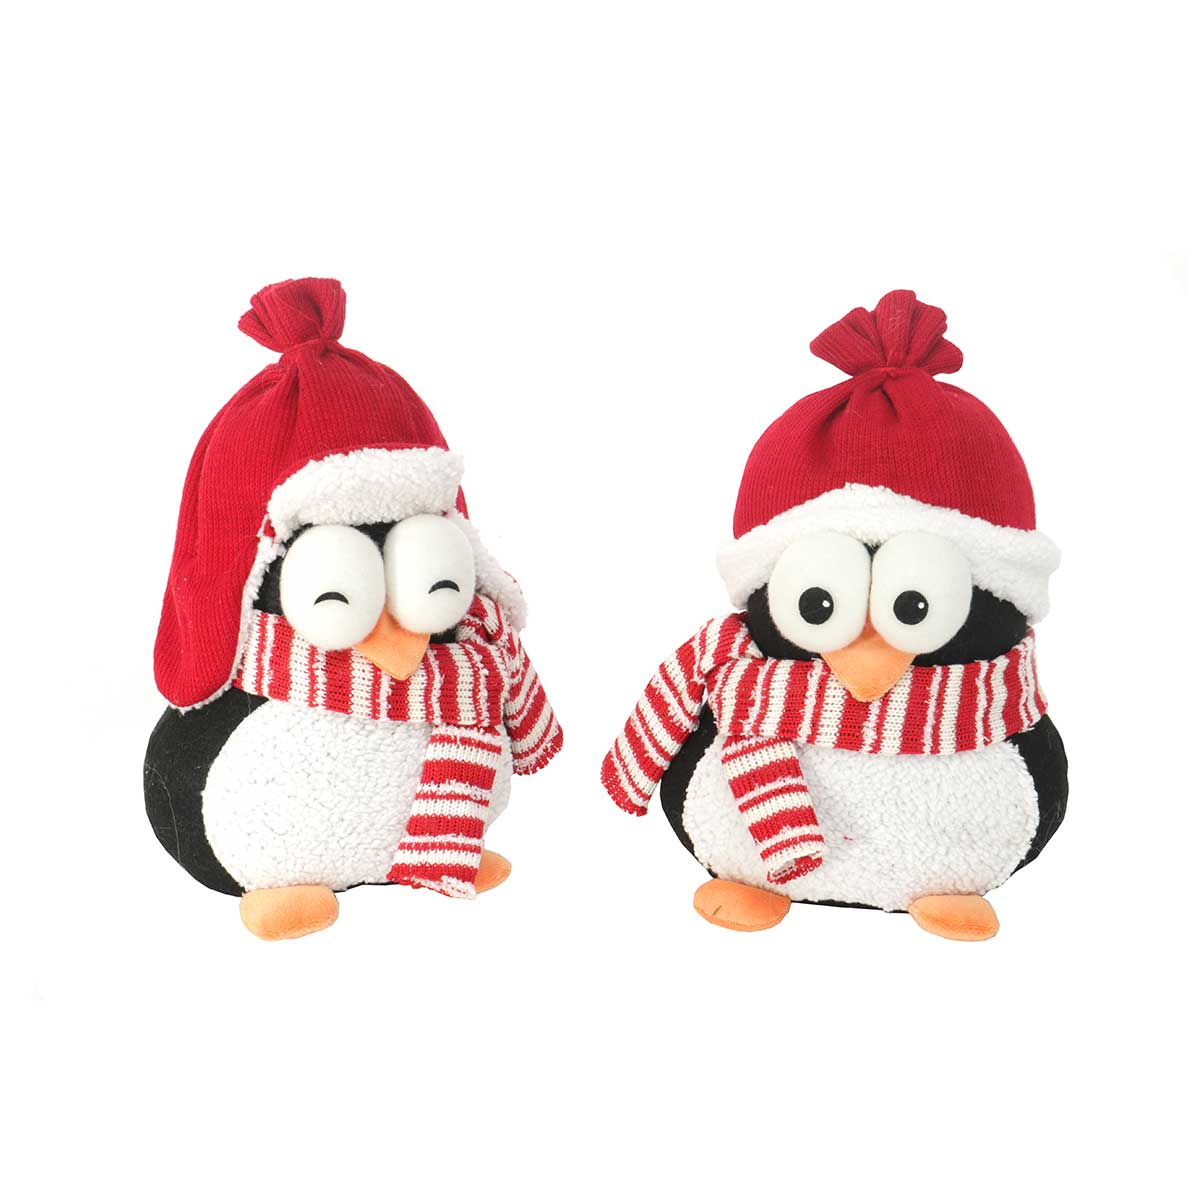 PENGUIN TWINS 2 ASSORTED 10""